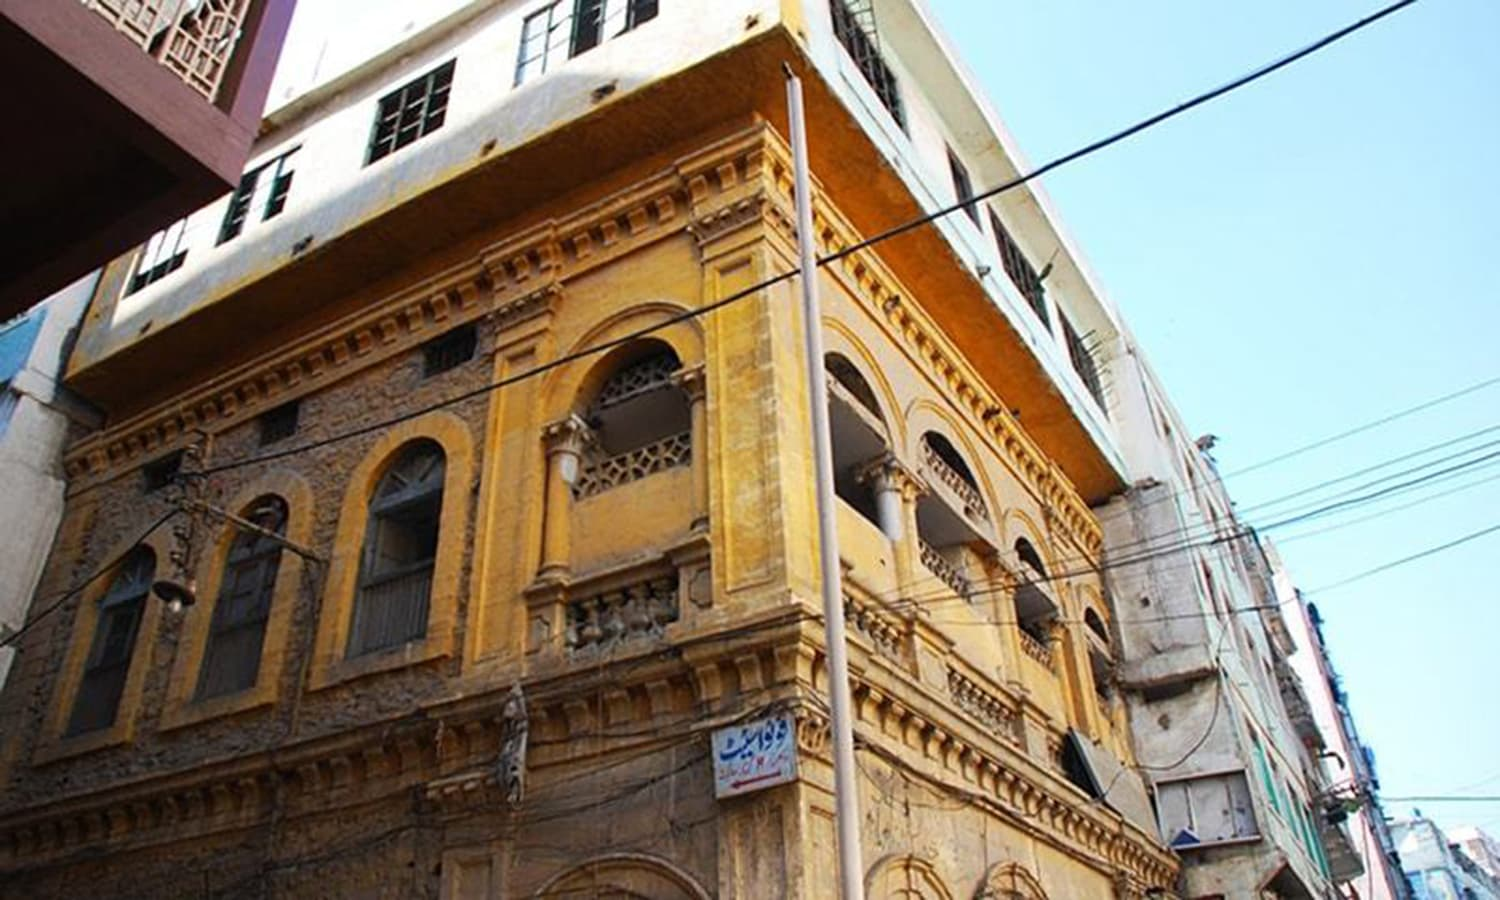 Wazir Mansion, the site which many have claimed to be the birthplace of Quaid-e-Azam. Photo: Farooq Soomro